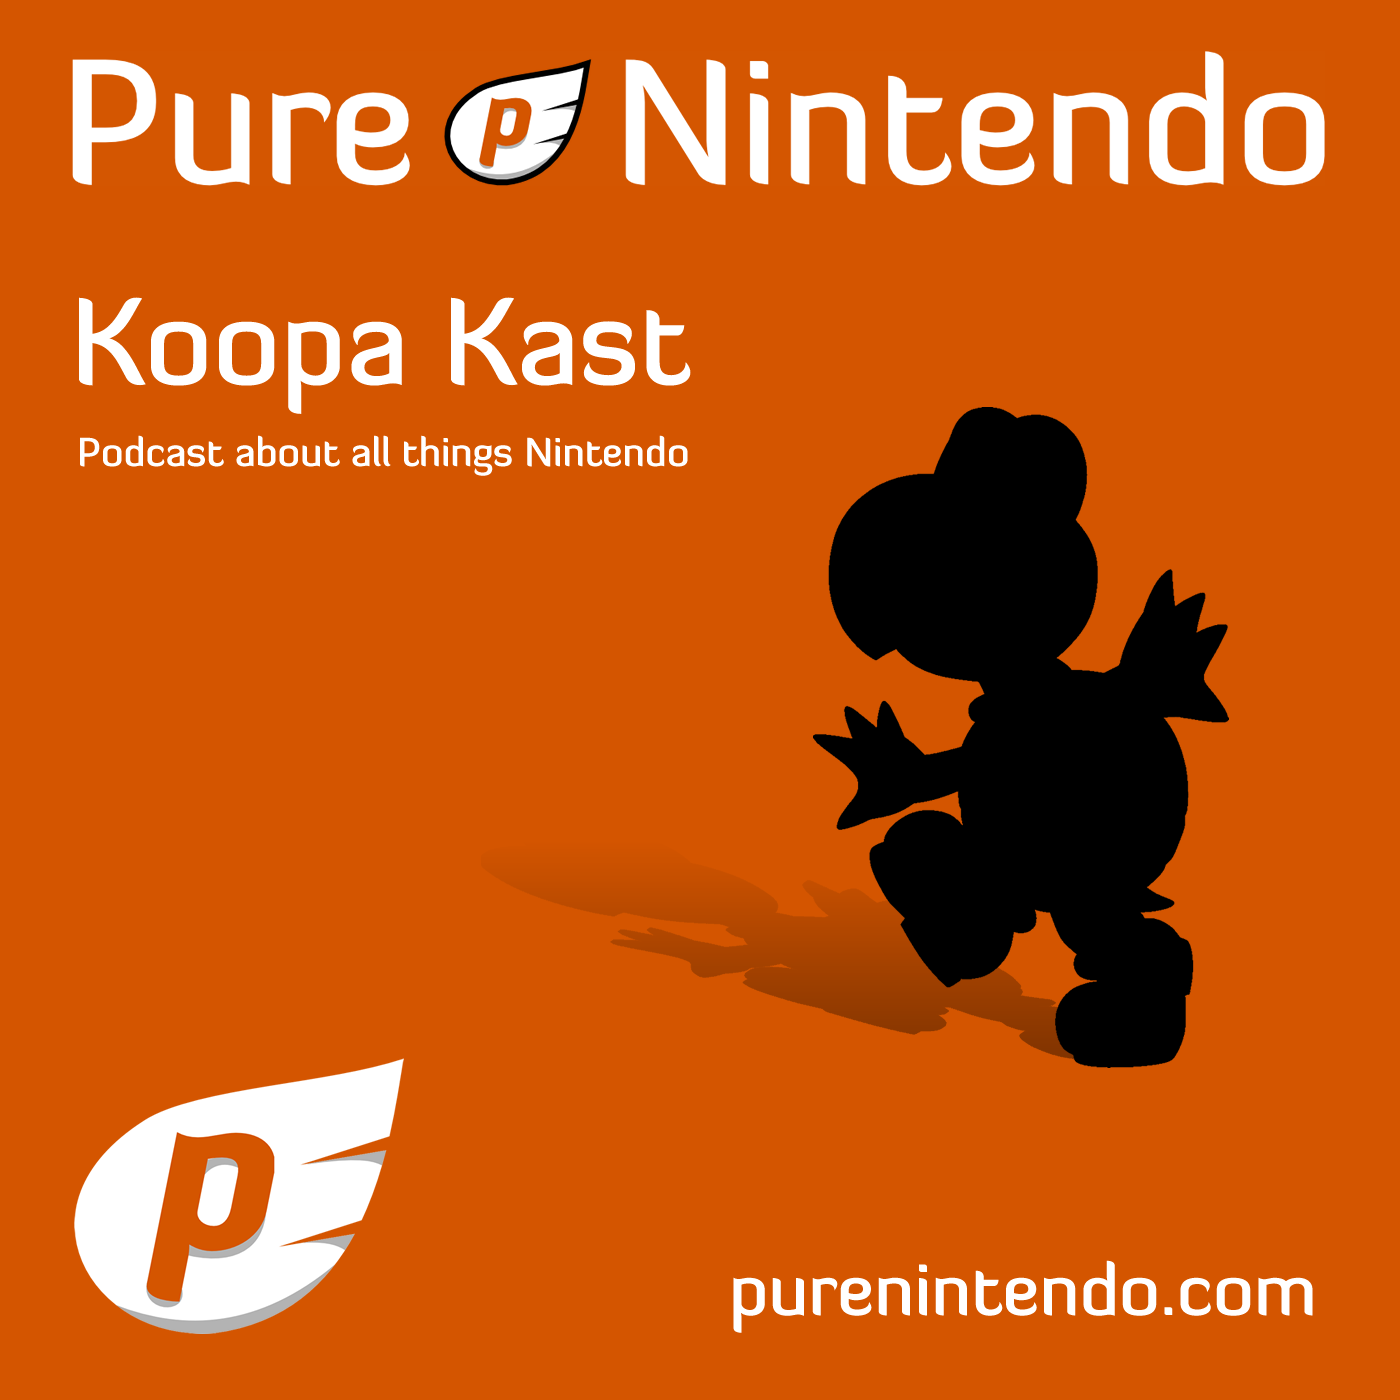 Koopa Kast 96: Ups and Take-Downs, Pokemon Sun and Moon